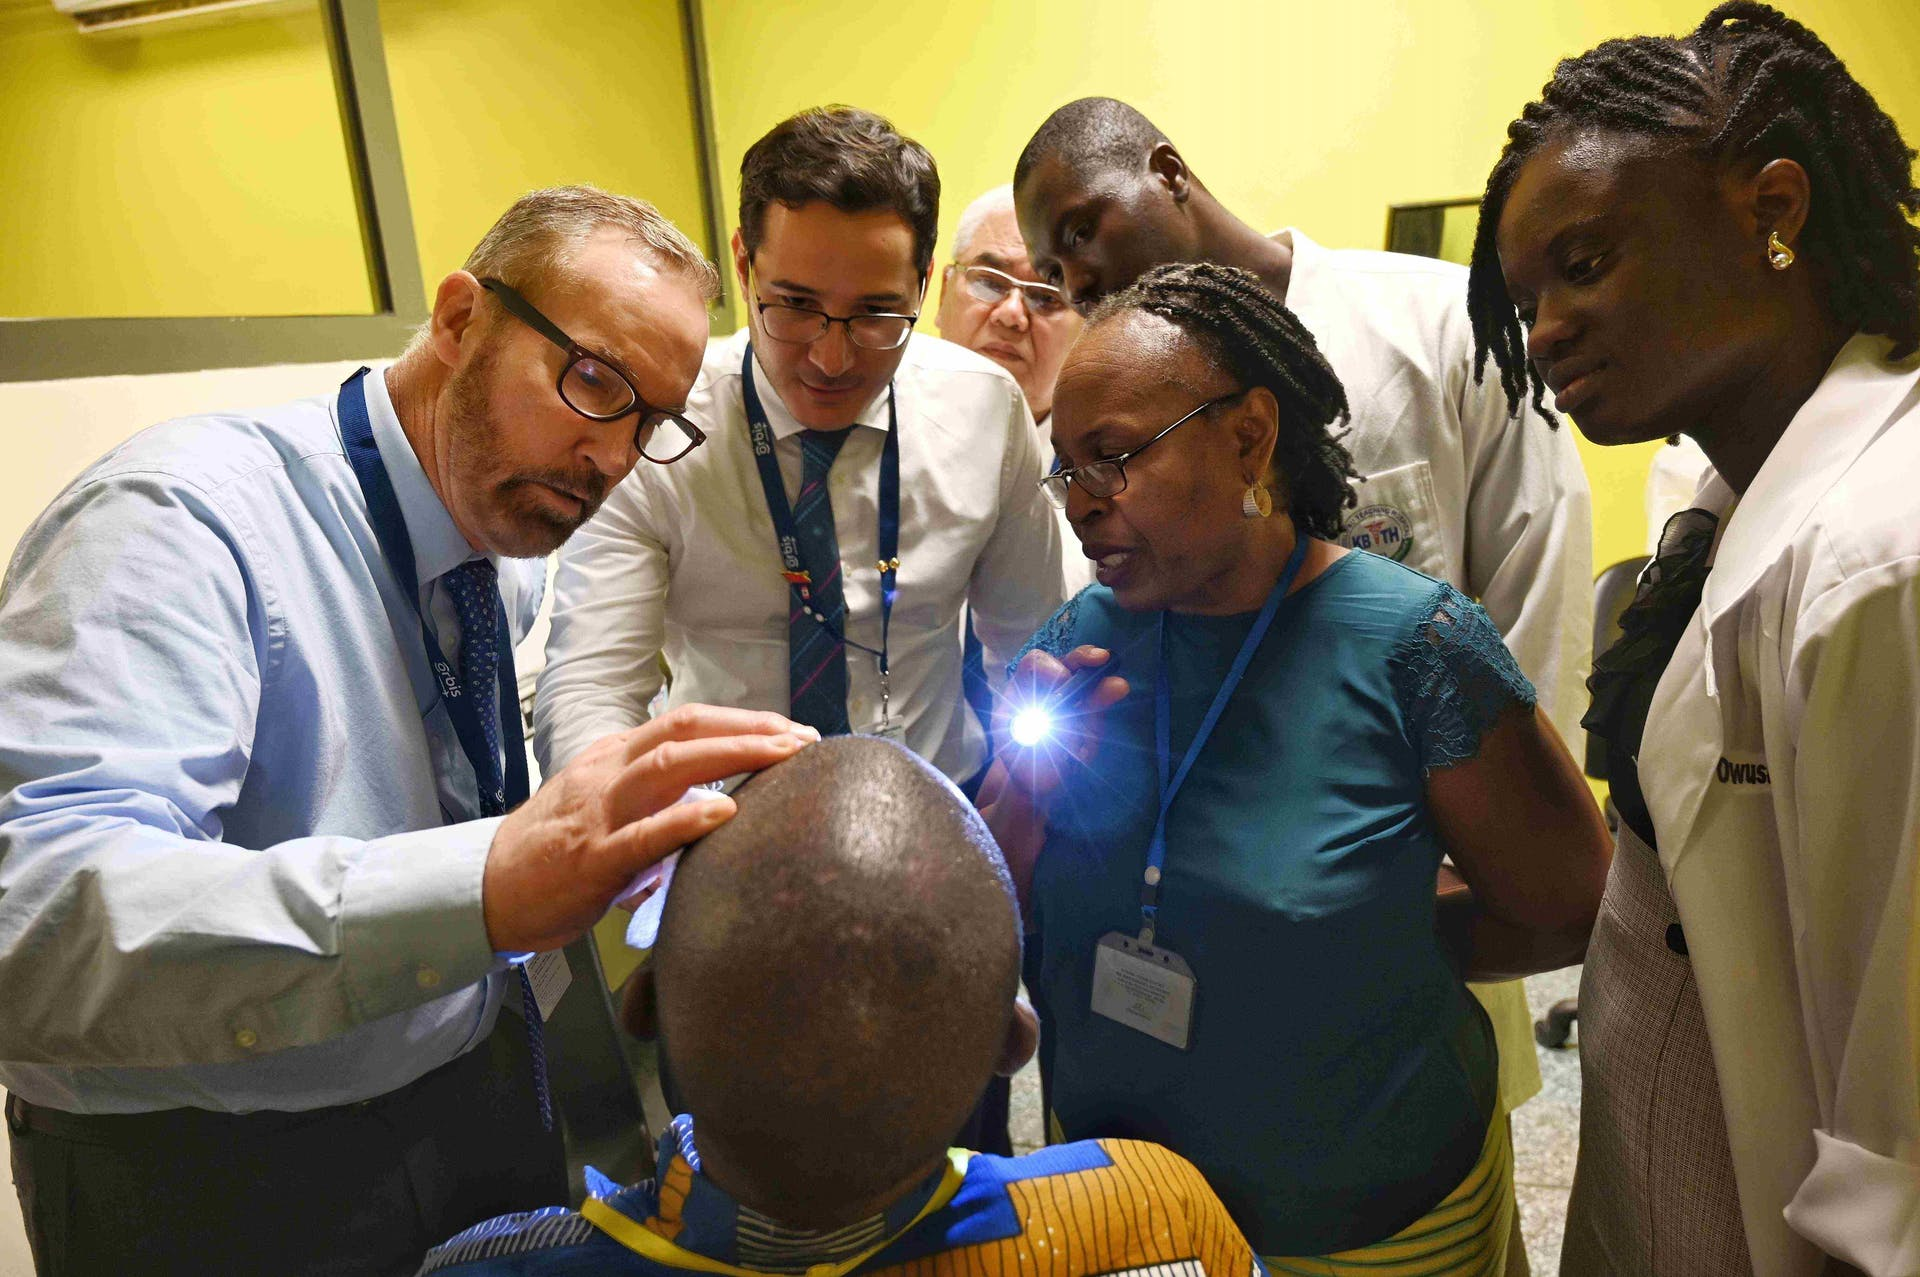 Screening a patient and training local eye dcotors during an Orbis project in Accra, Ghana